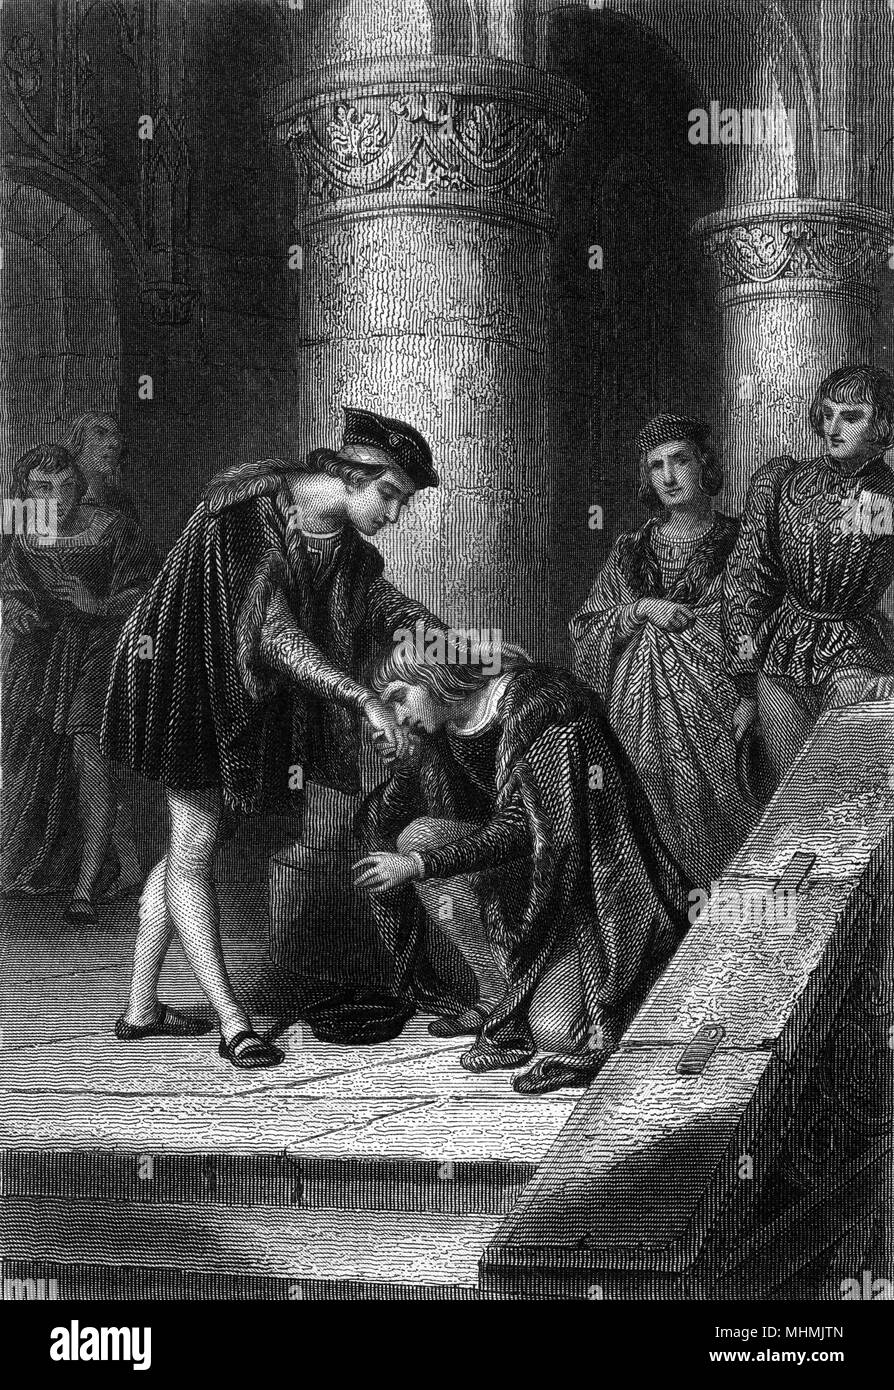 Young Charles VIII releases from prison Louis d'Orleans, one of the rebels opposing the crown. The reconciliation leads to Louis succeeding Charles as Louis XII     Date: 1491 - Stock Image